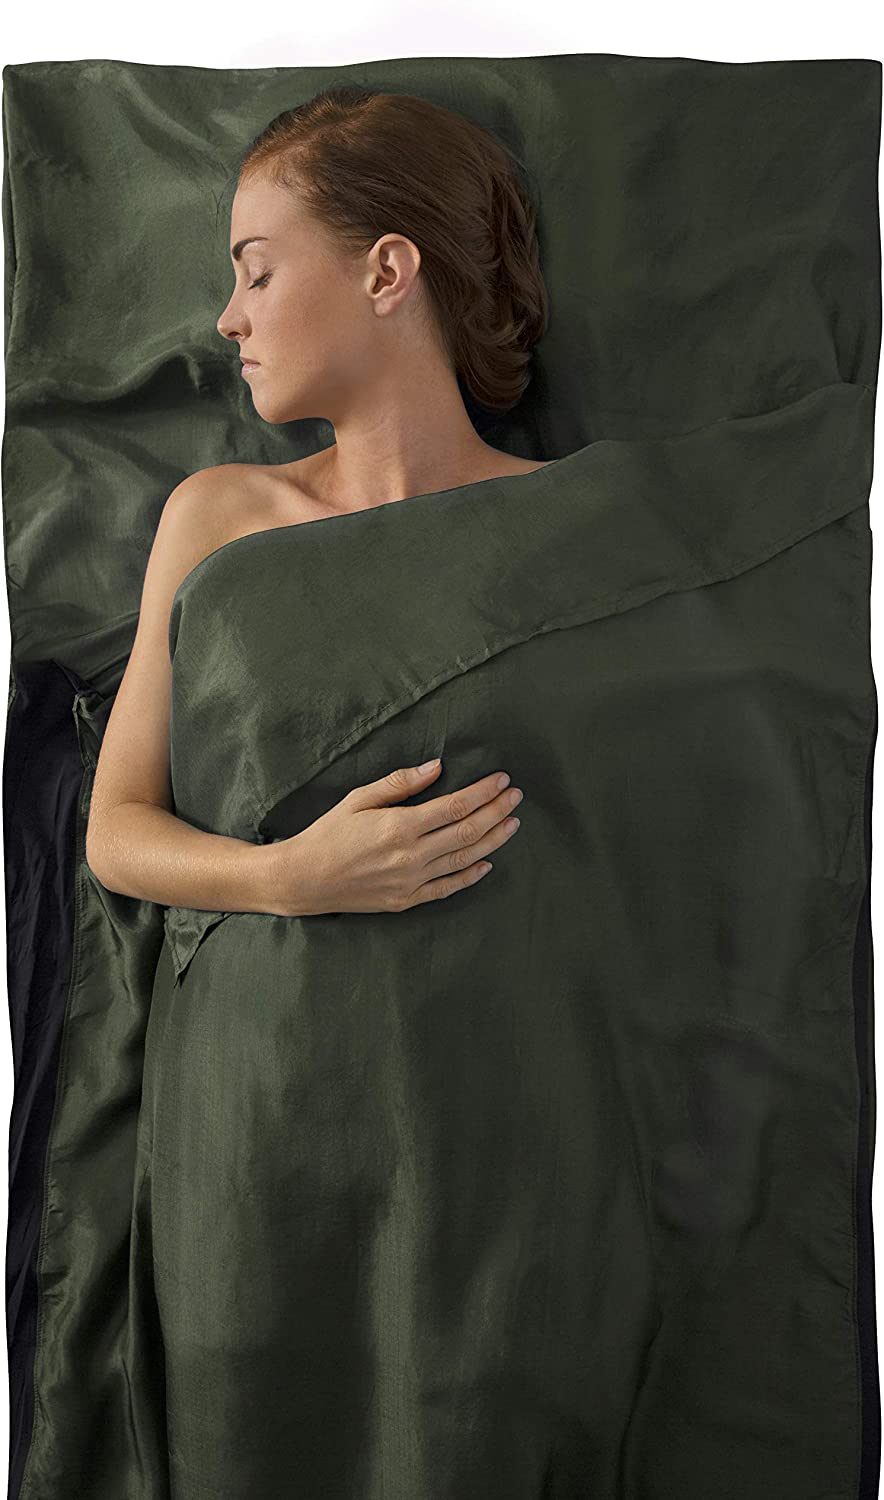 Sea to Summit Premium Silk Travel Liner, Eucalyptus Green, Traveler w/ Pillow Insert (85 x 36in)